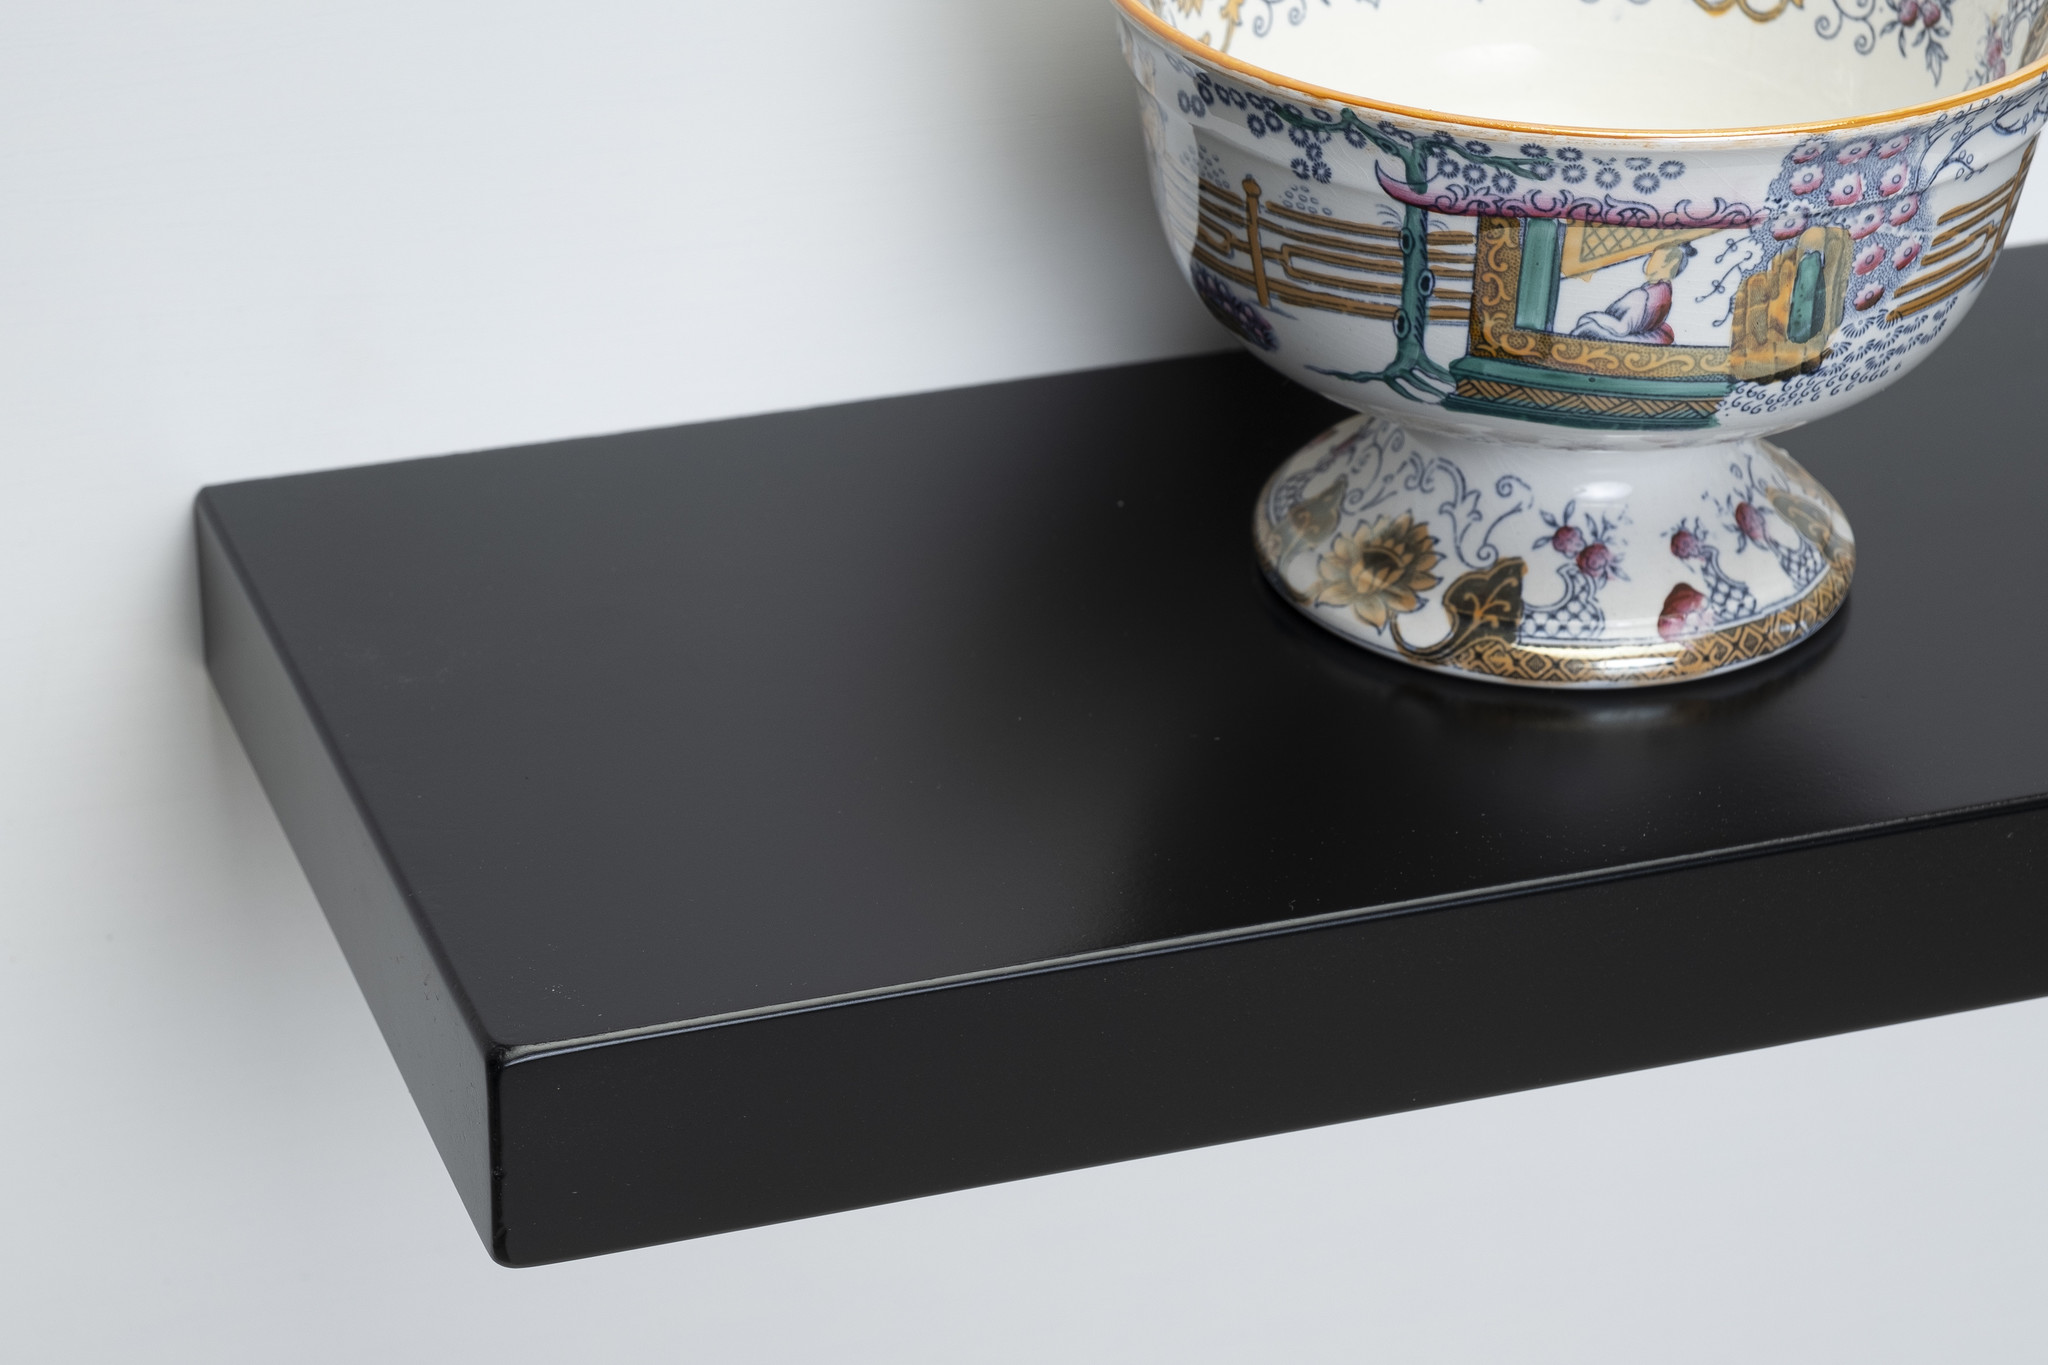 19mm-Length Selectable Wall Board Wall Board Shelf Shelving Wall Socket Board T 24cm thickness